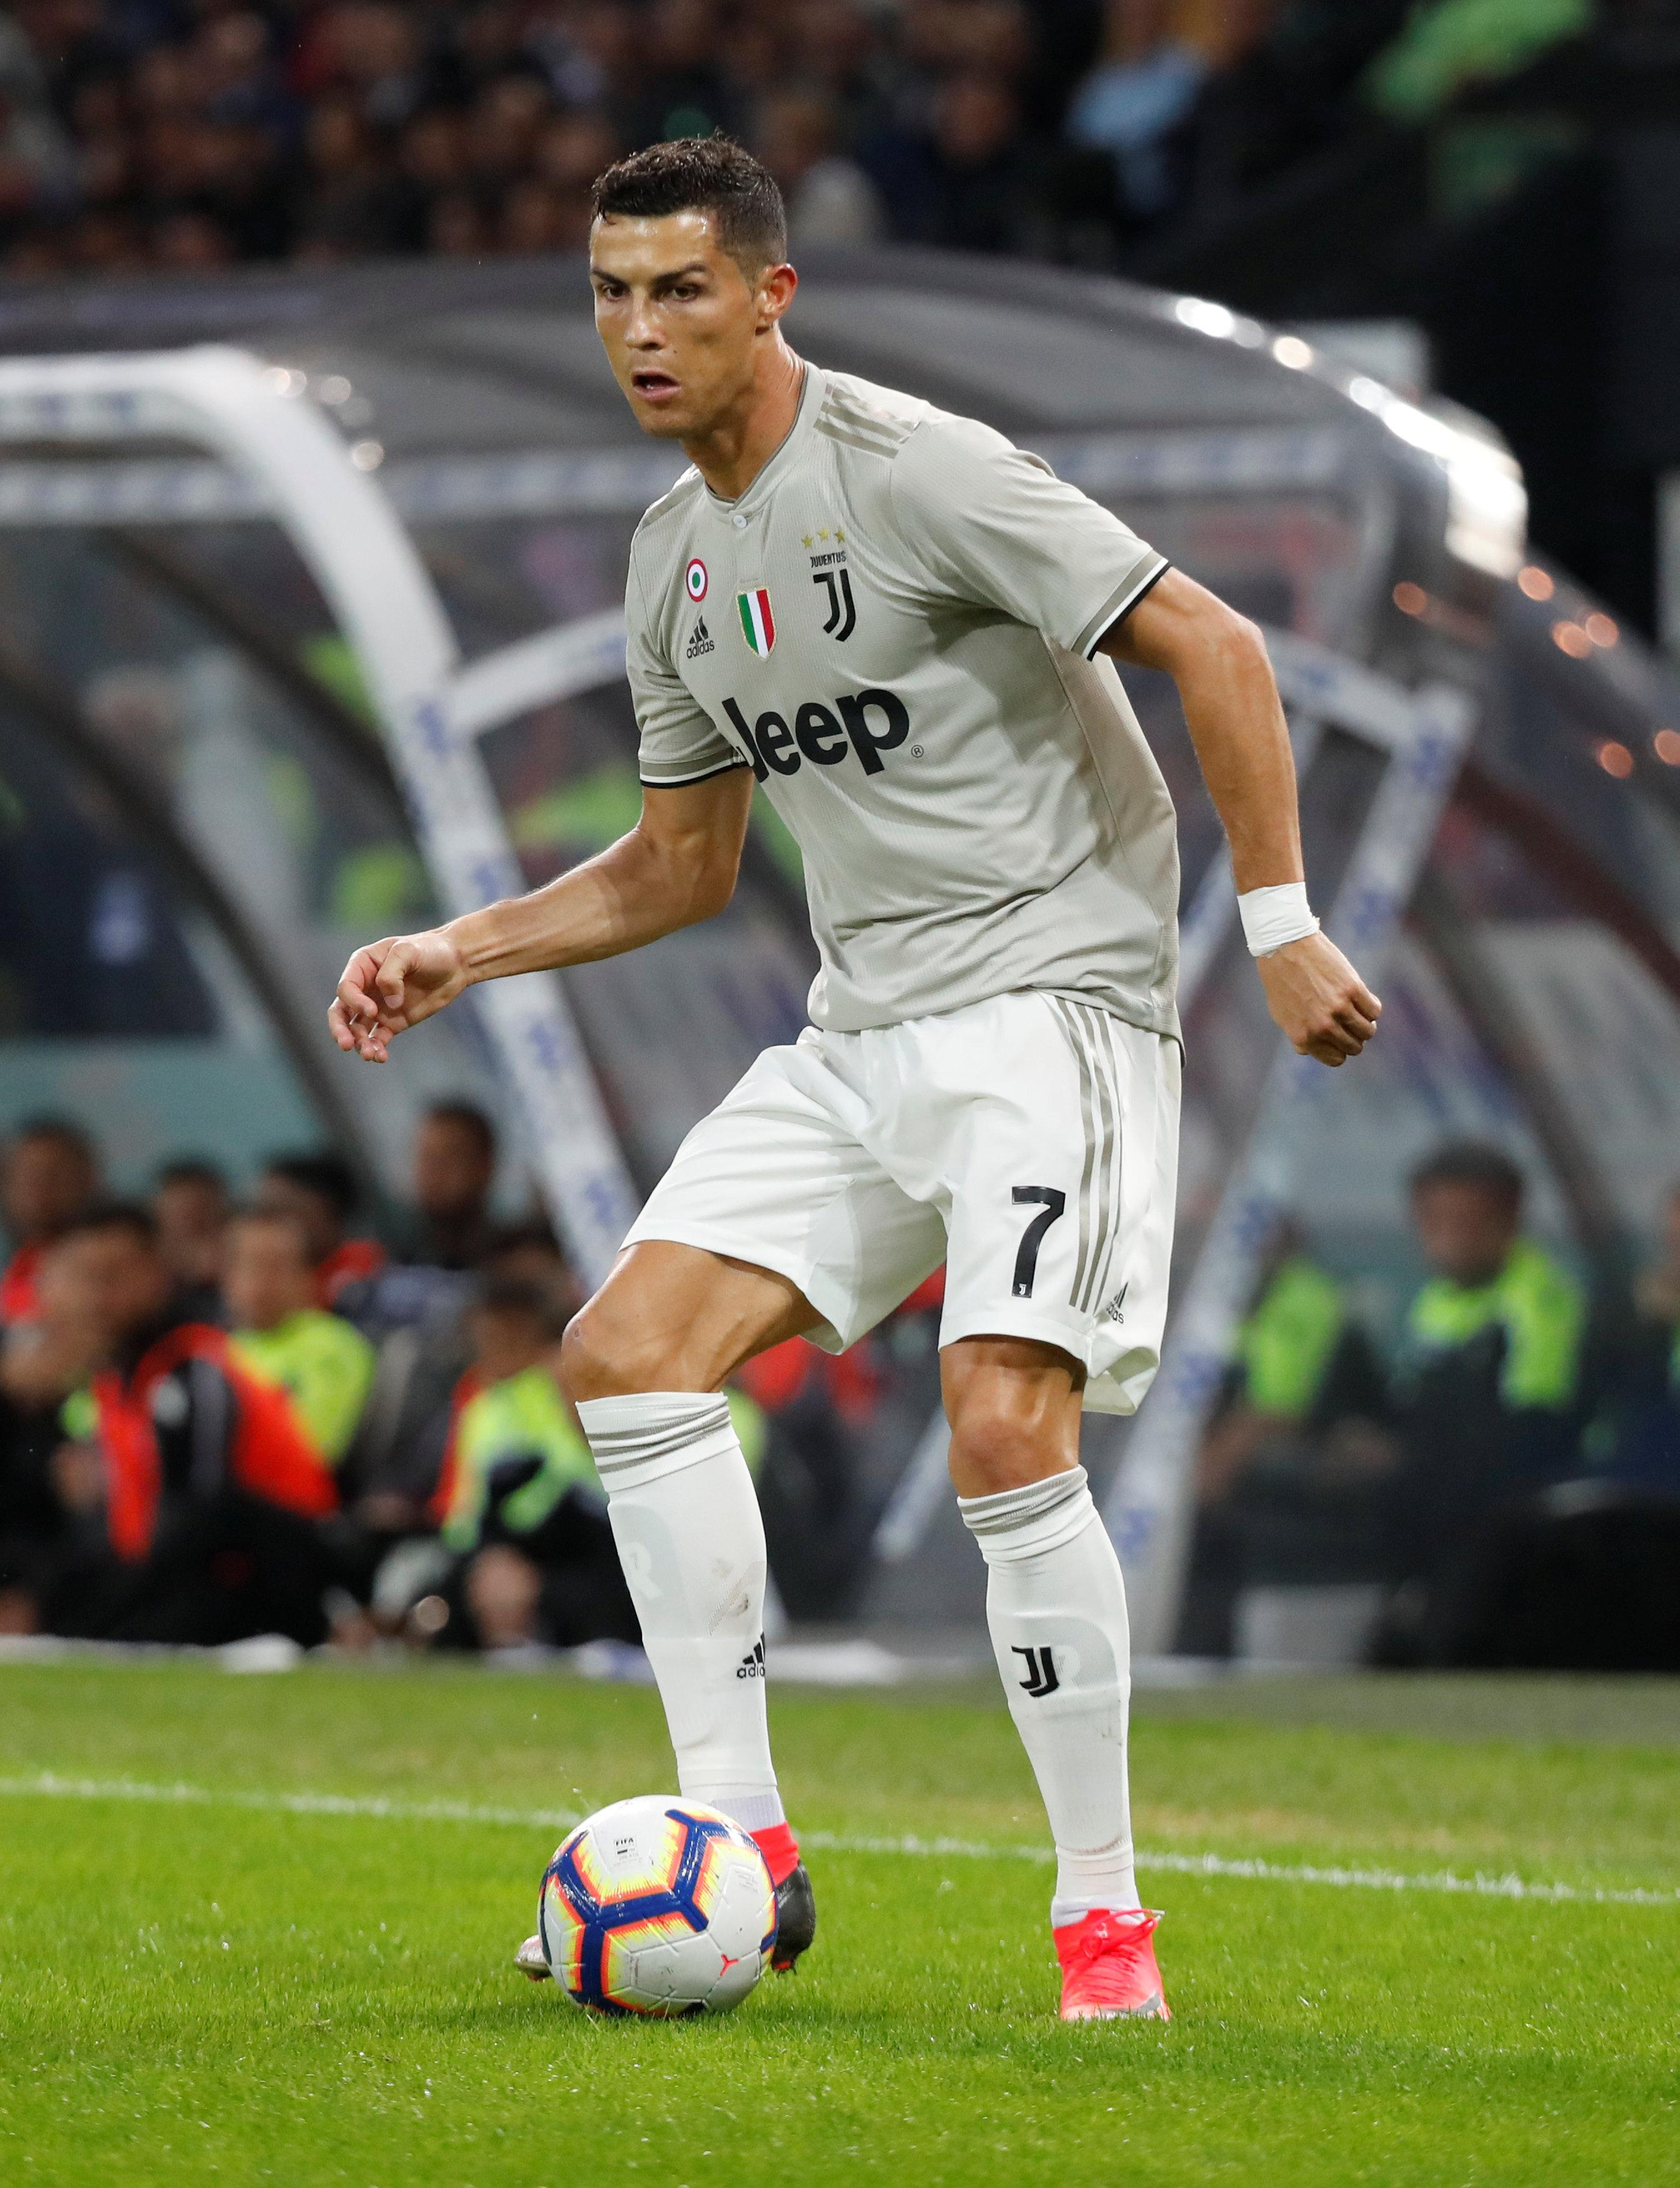 Cristiano Ronaldo denied claims of romping with a 17-year-old prostitute at centre of Silvio Berlusconi's 'bunga bunga' sex scandal